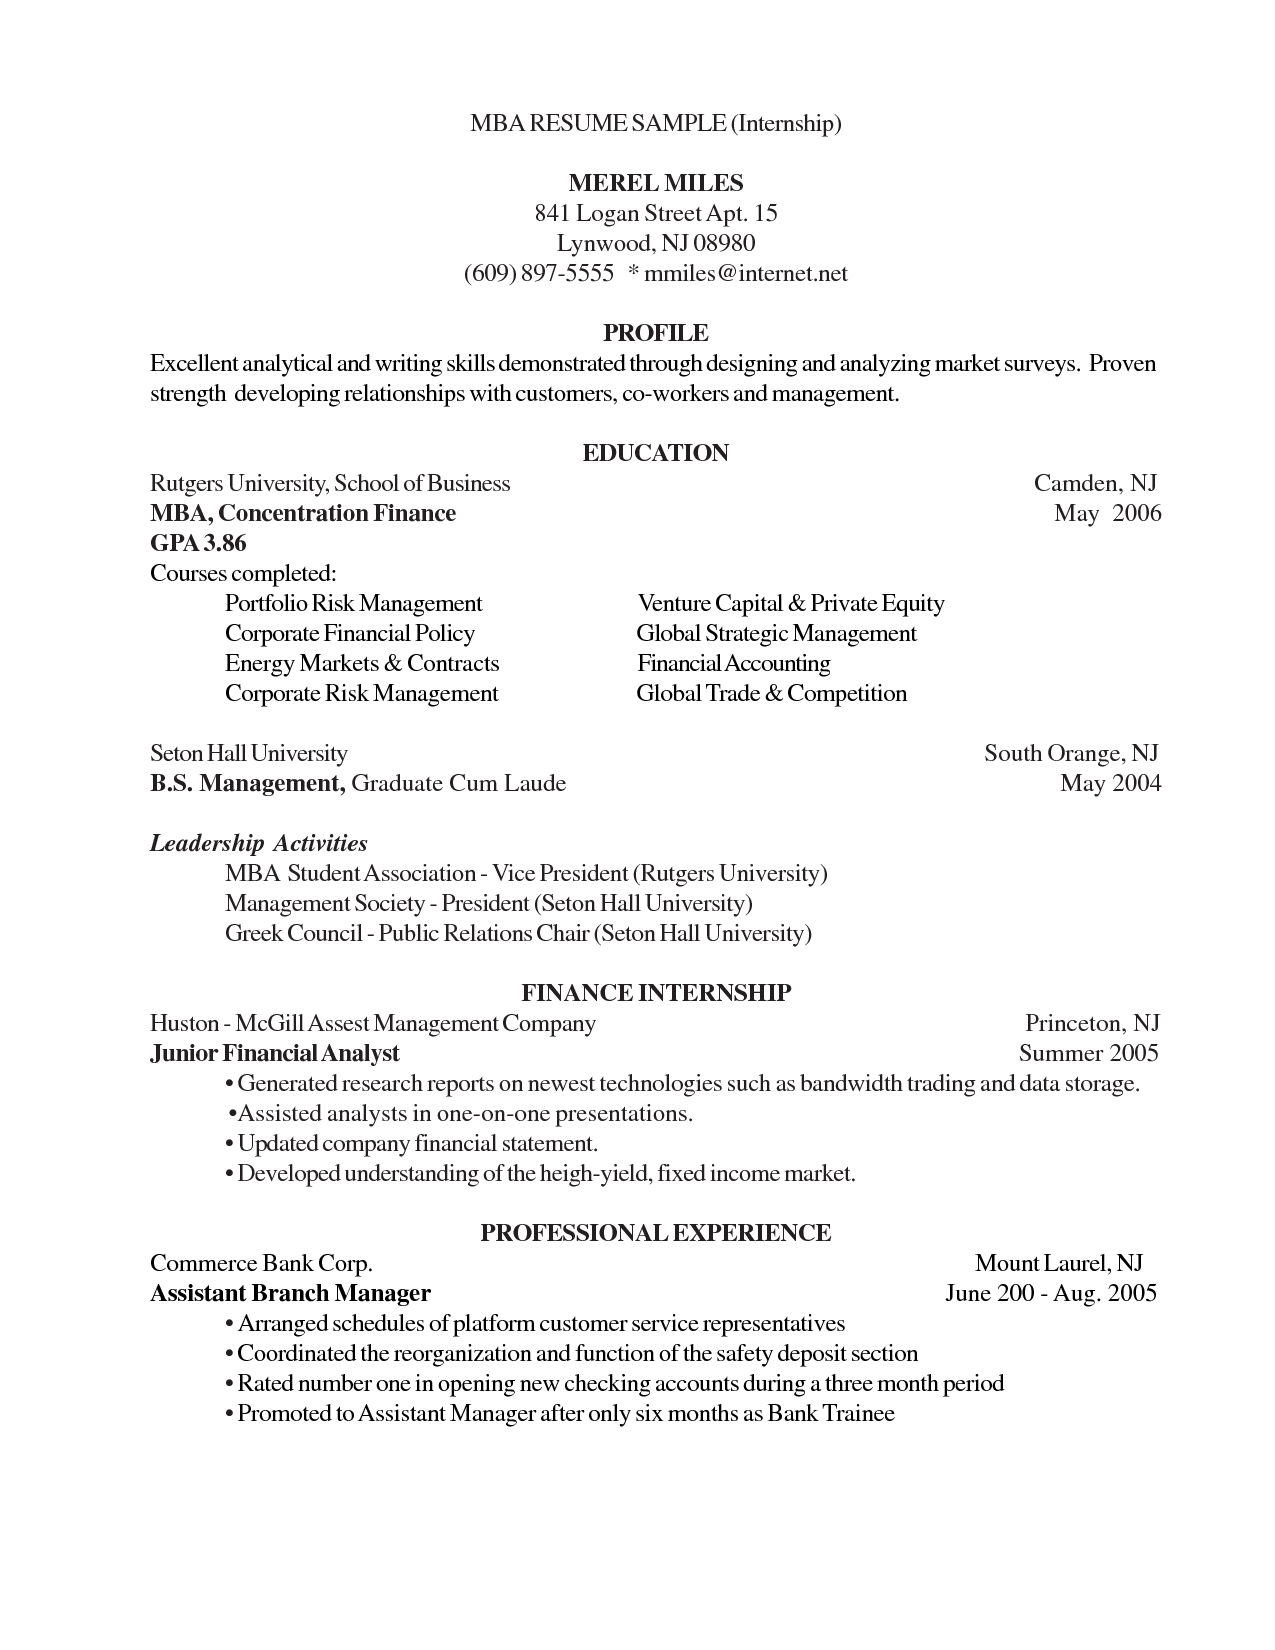 College Student Resume Template Word Resume Sample Template Word Examples Resumes Responsibilities